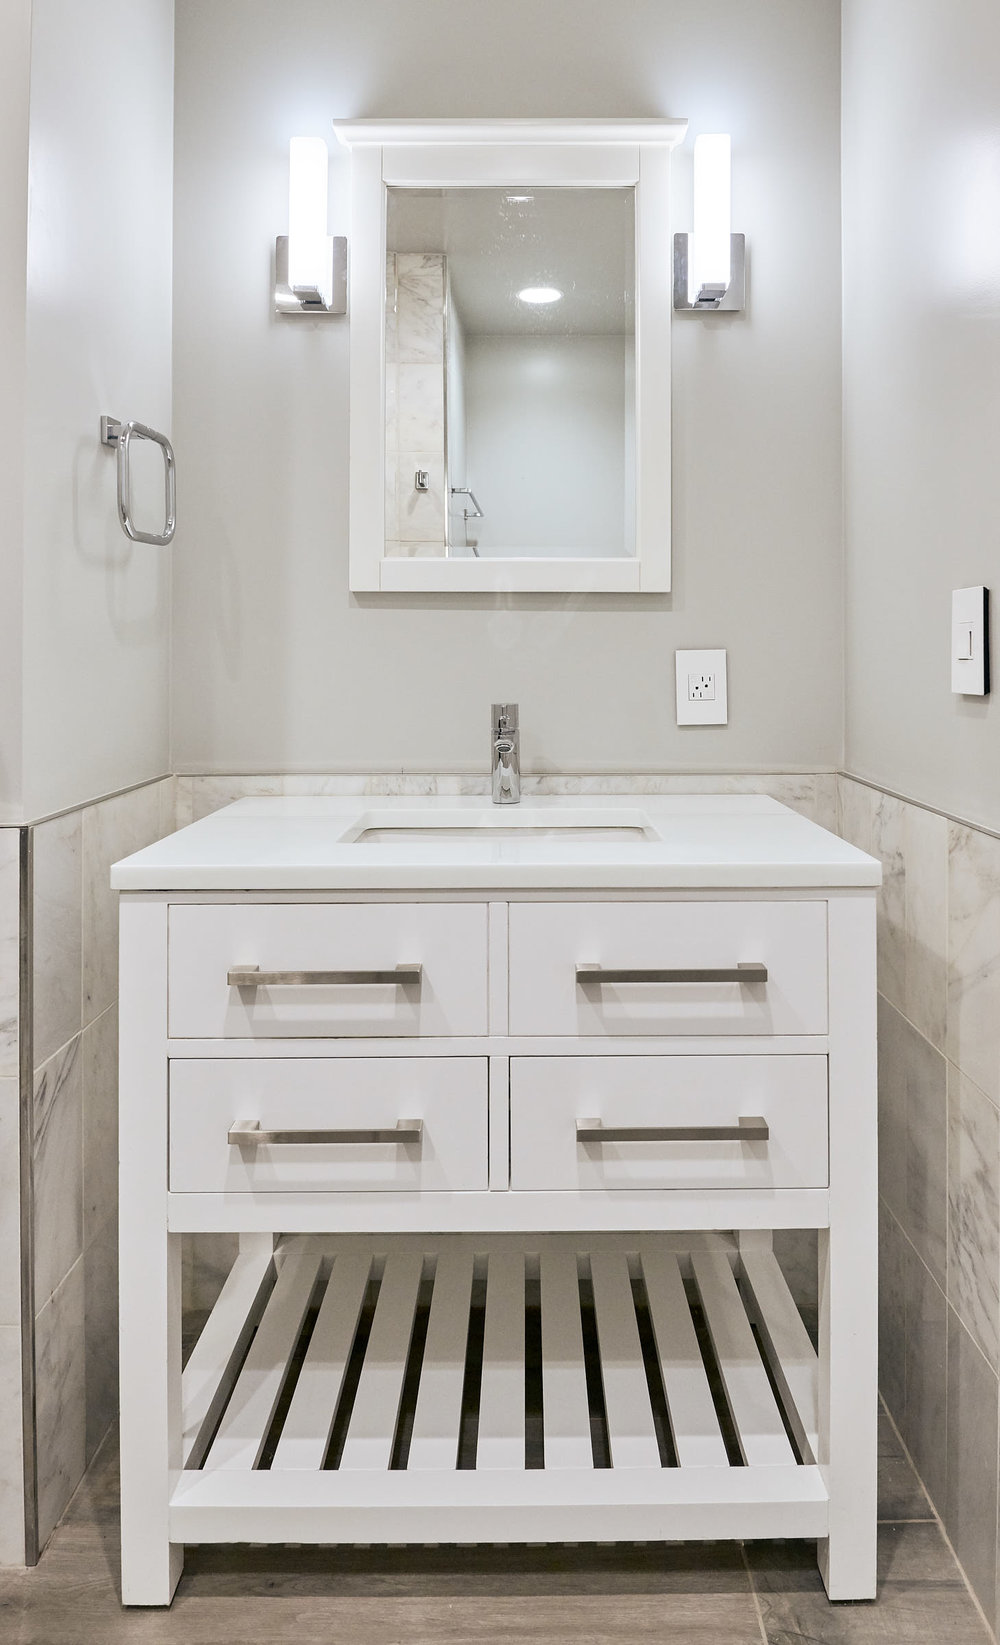 White Carrera Marble tiles, White Quartz Counter, White Cabinet all make for a classic bathroom.